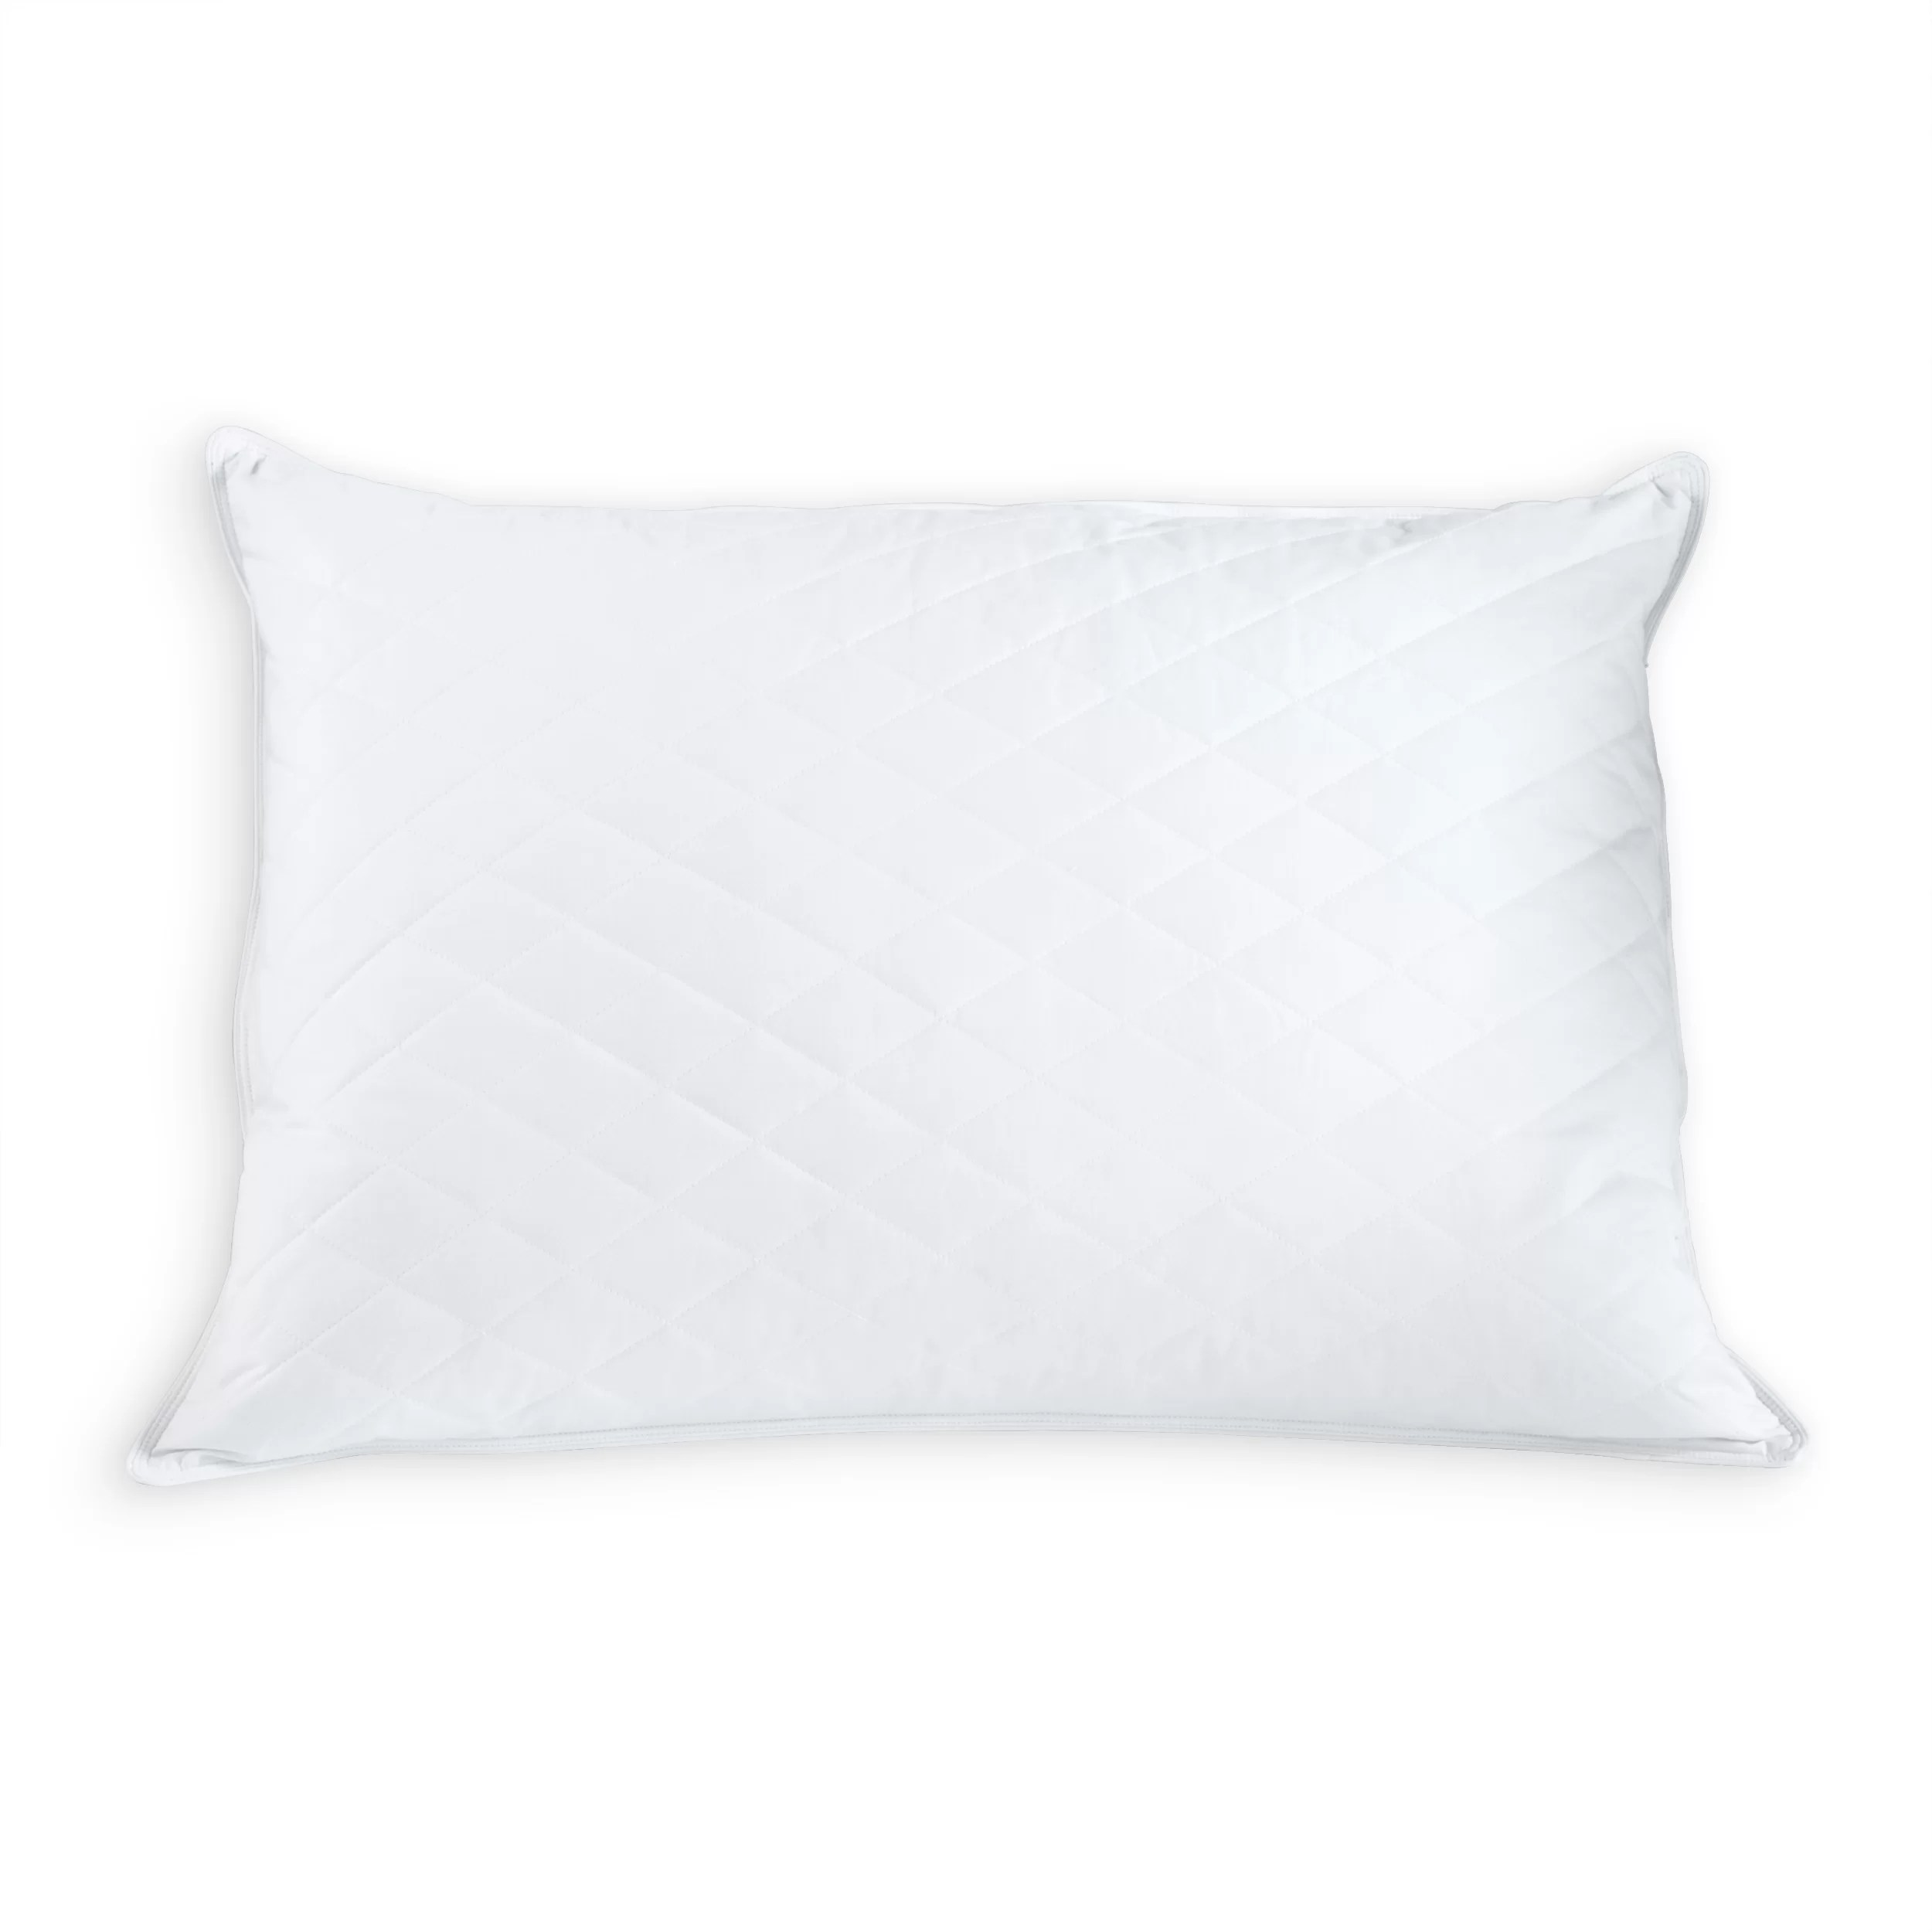 Eddie Bauer Quilted Feathers Pillow  Reviews  Wayfair